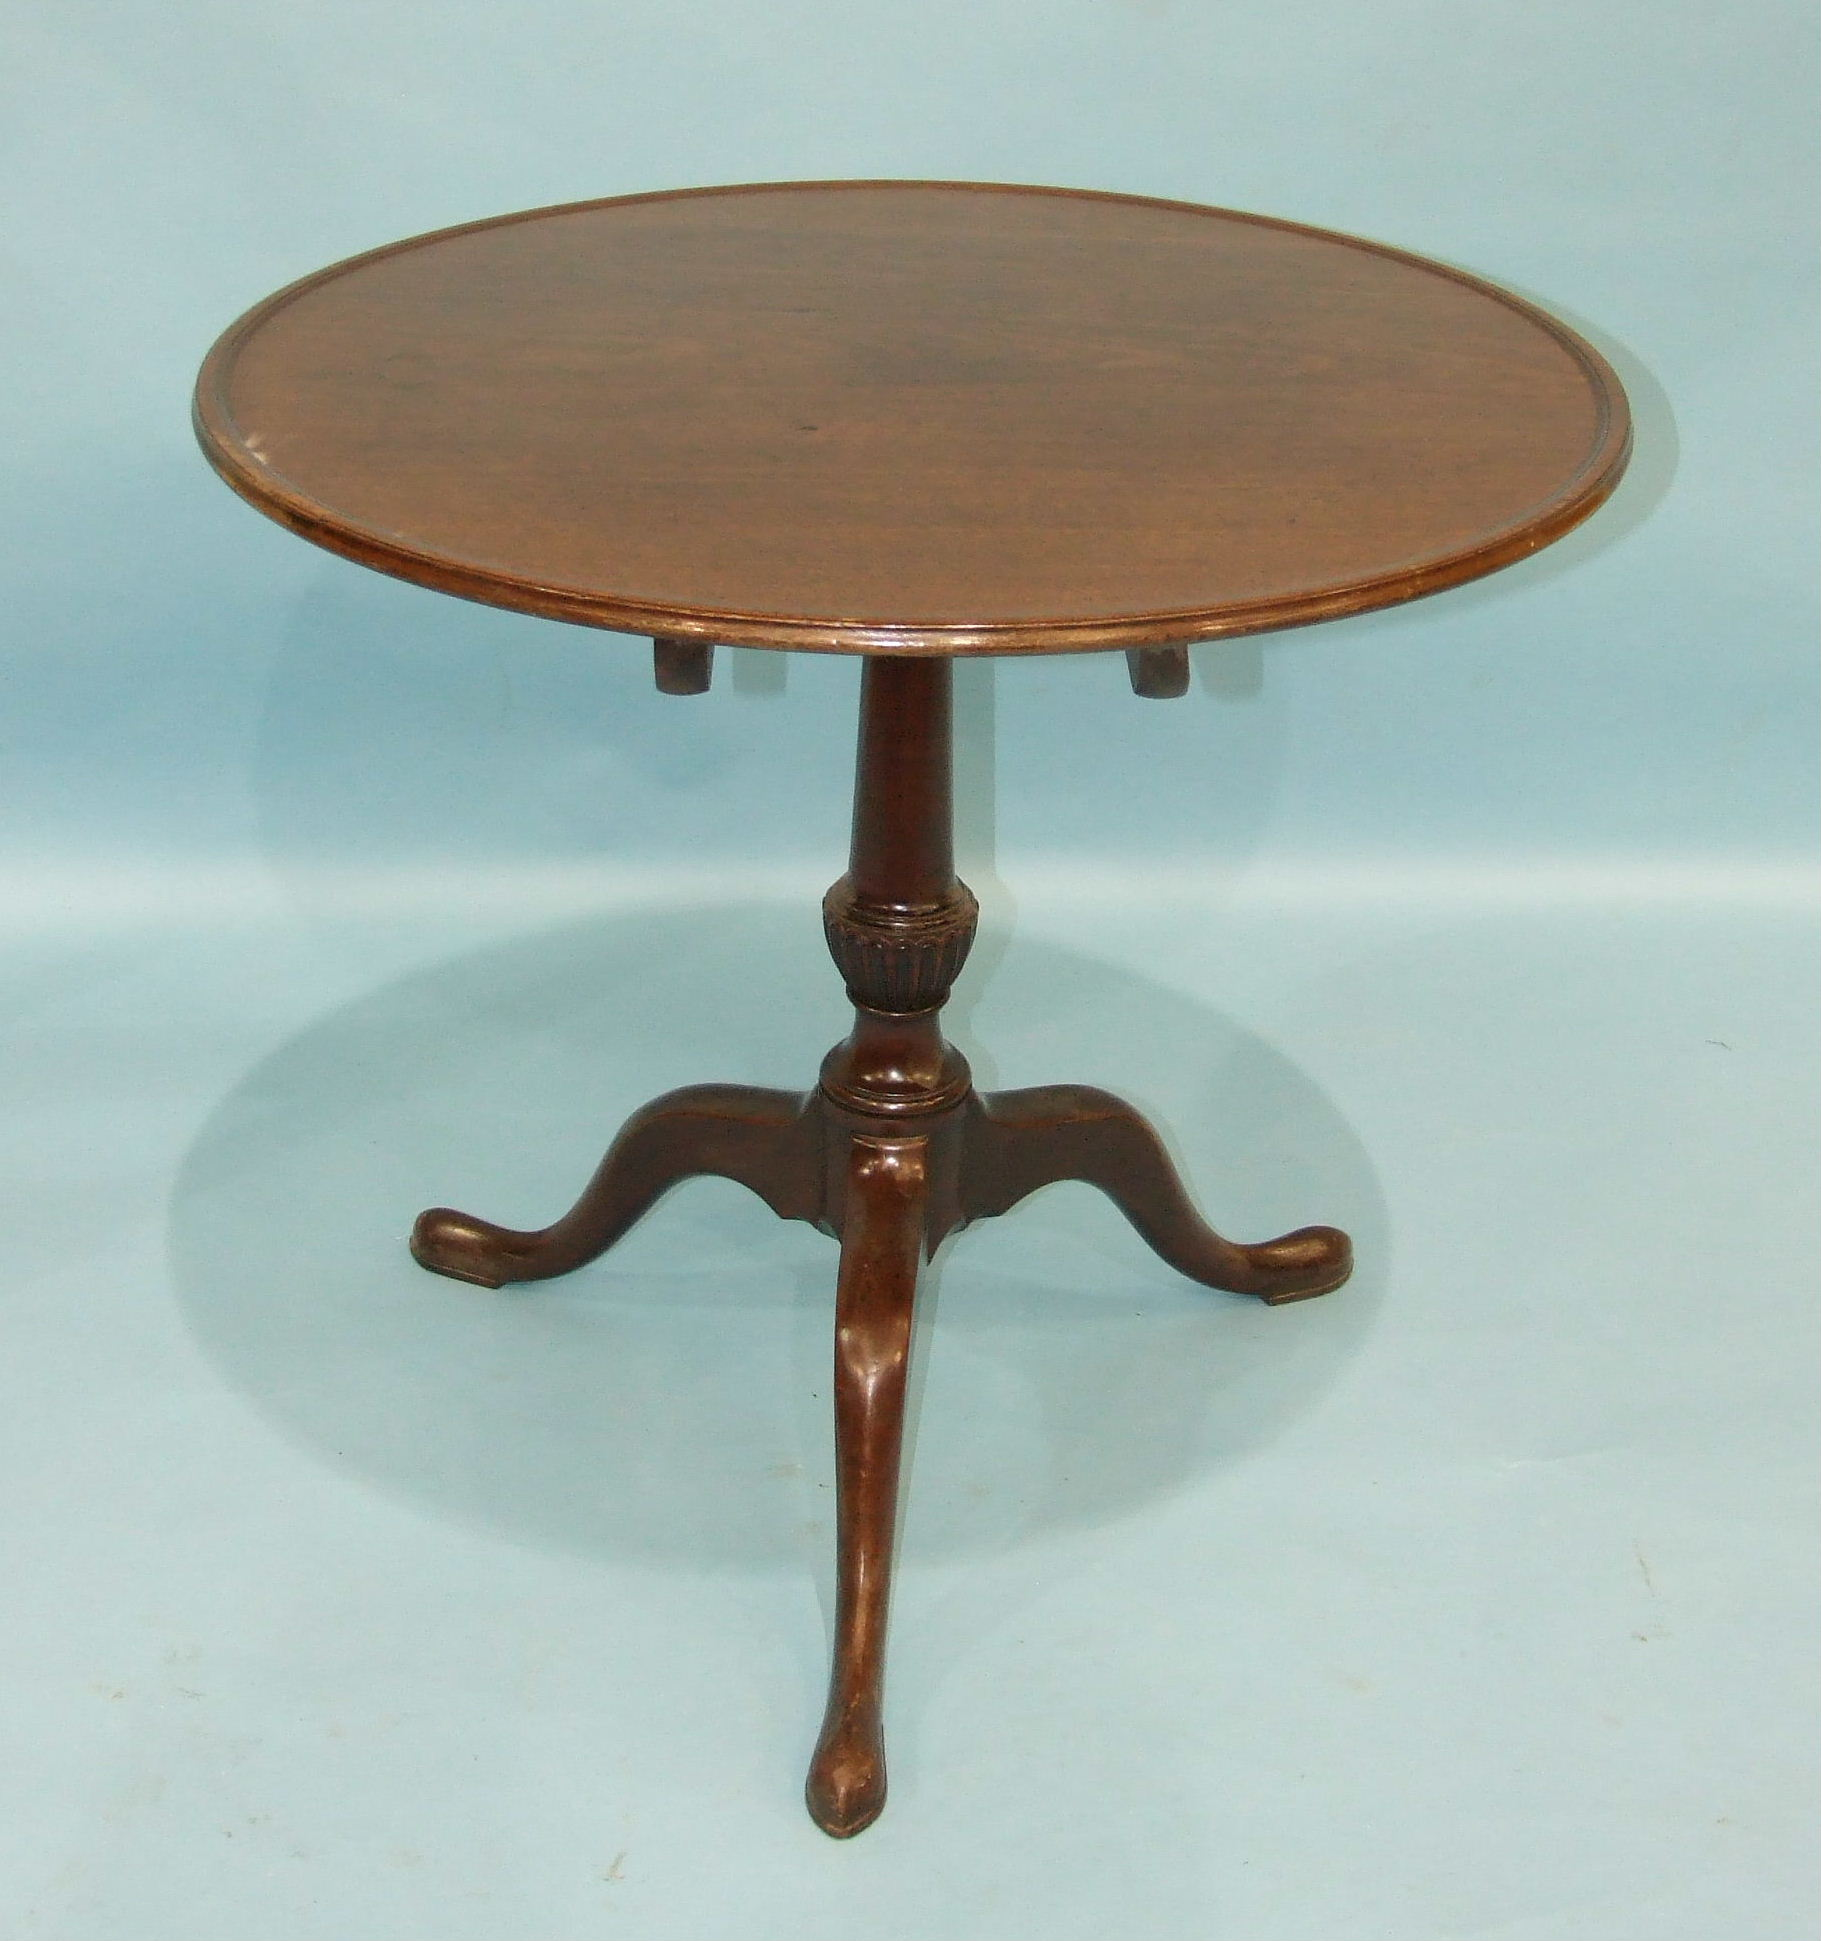 Lot 81 - An 18th century mahogany tripod table, the circular top with moulded border, on carved and turned